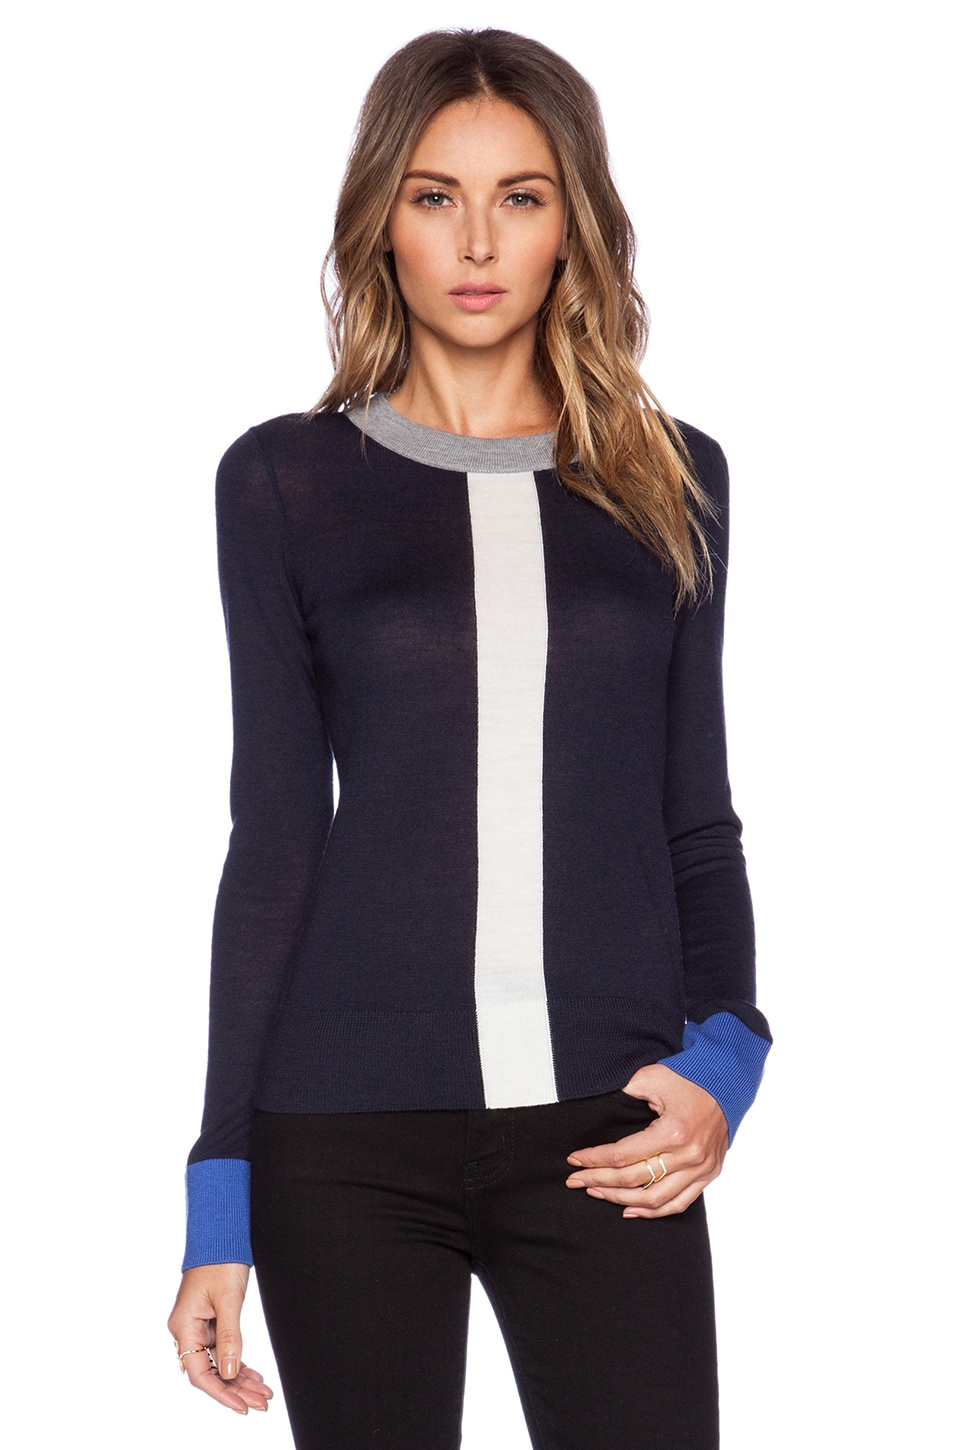 kate spade new york Graphic Wool Sweater in Rich Navy Multi